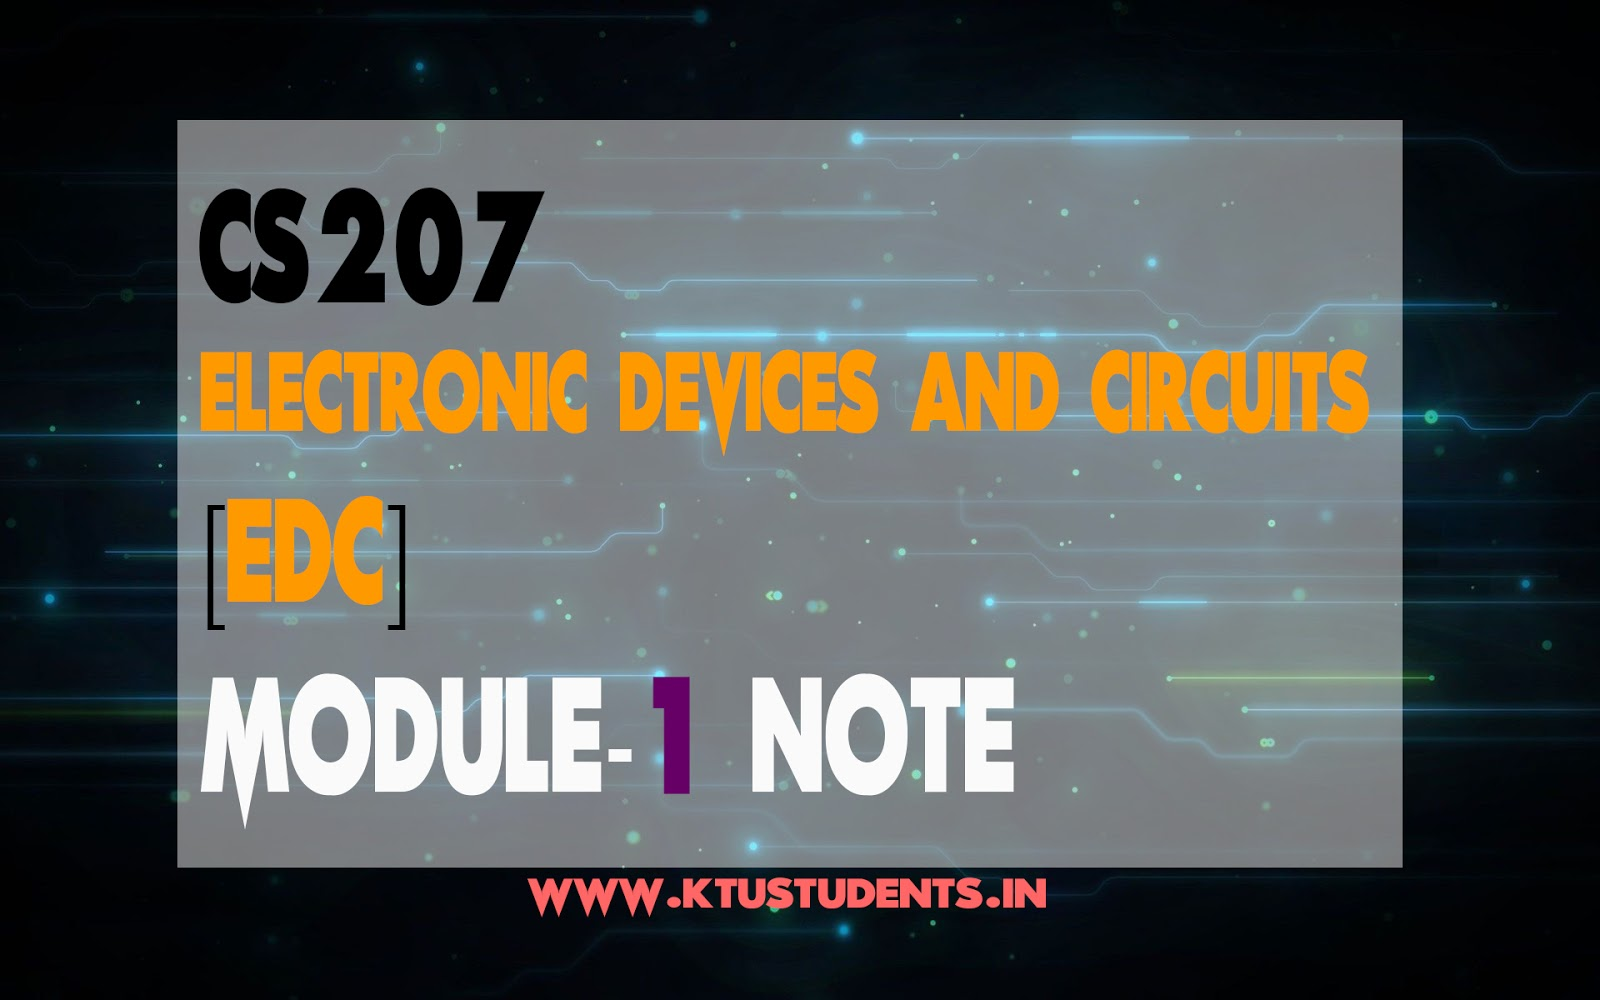 Electronic Devices and Circuits CS207 [EDC] Note-Module 1